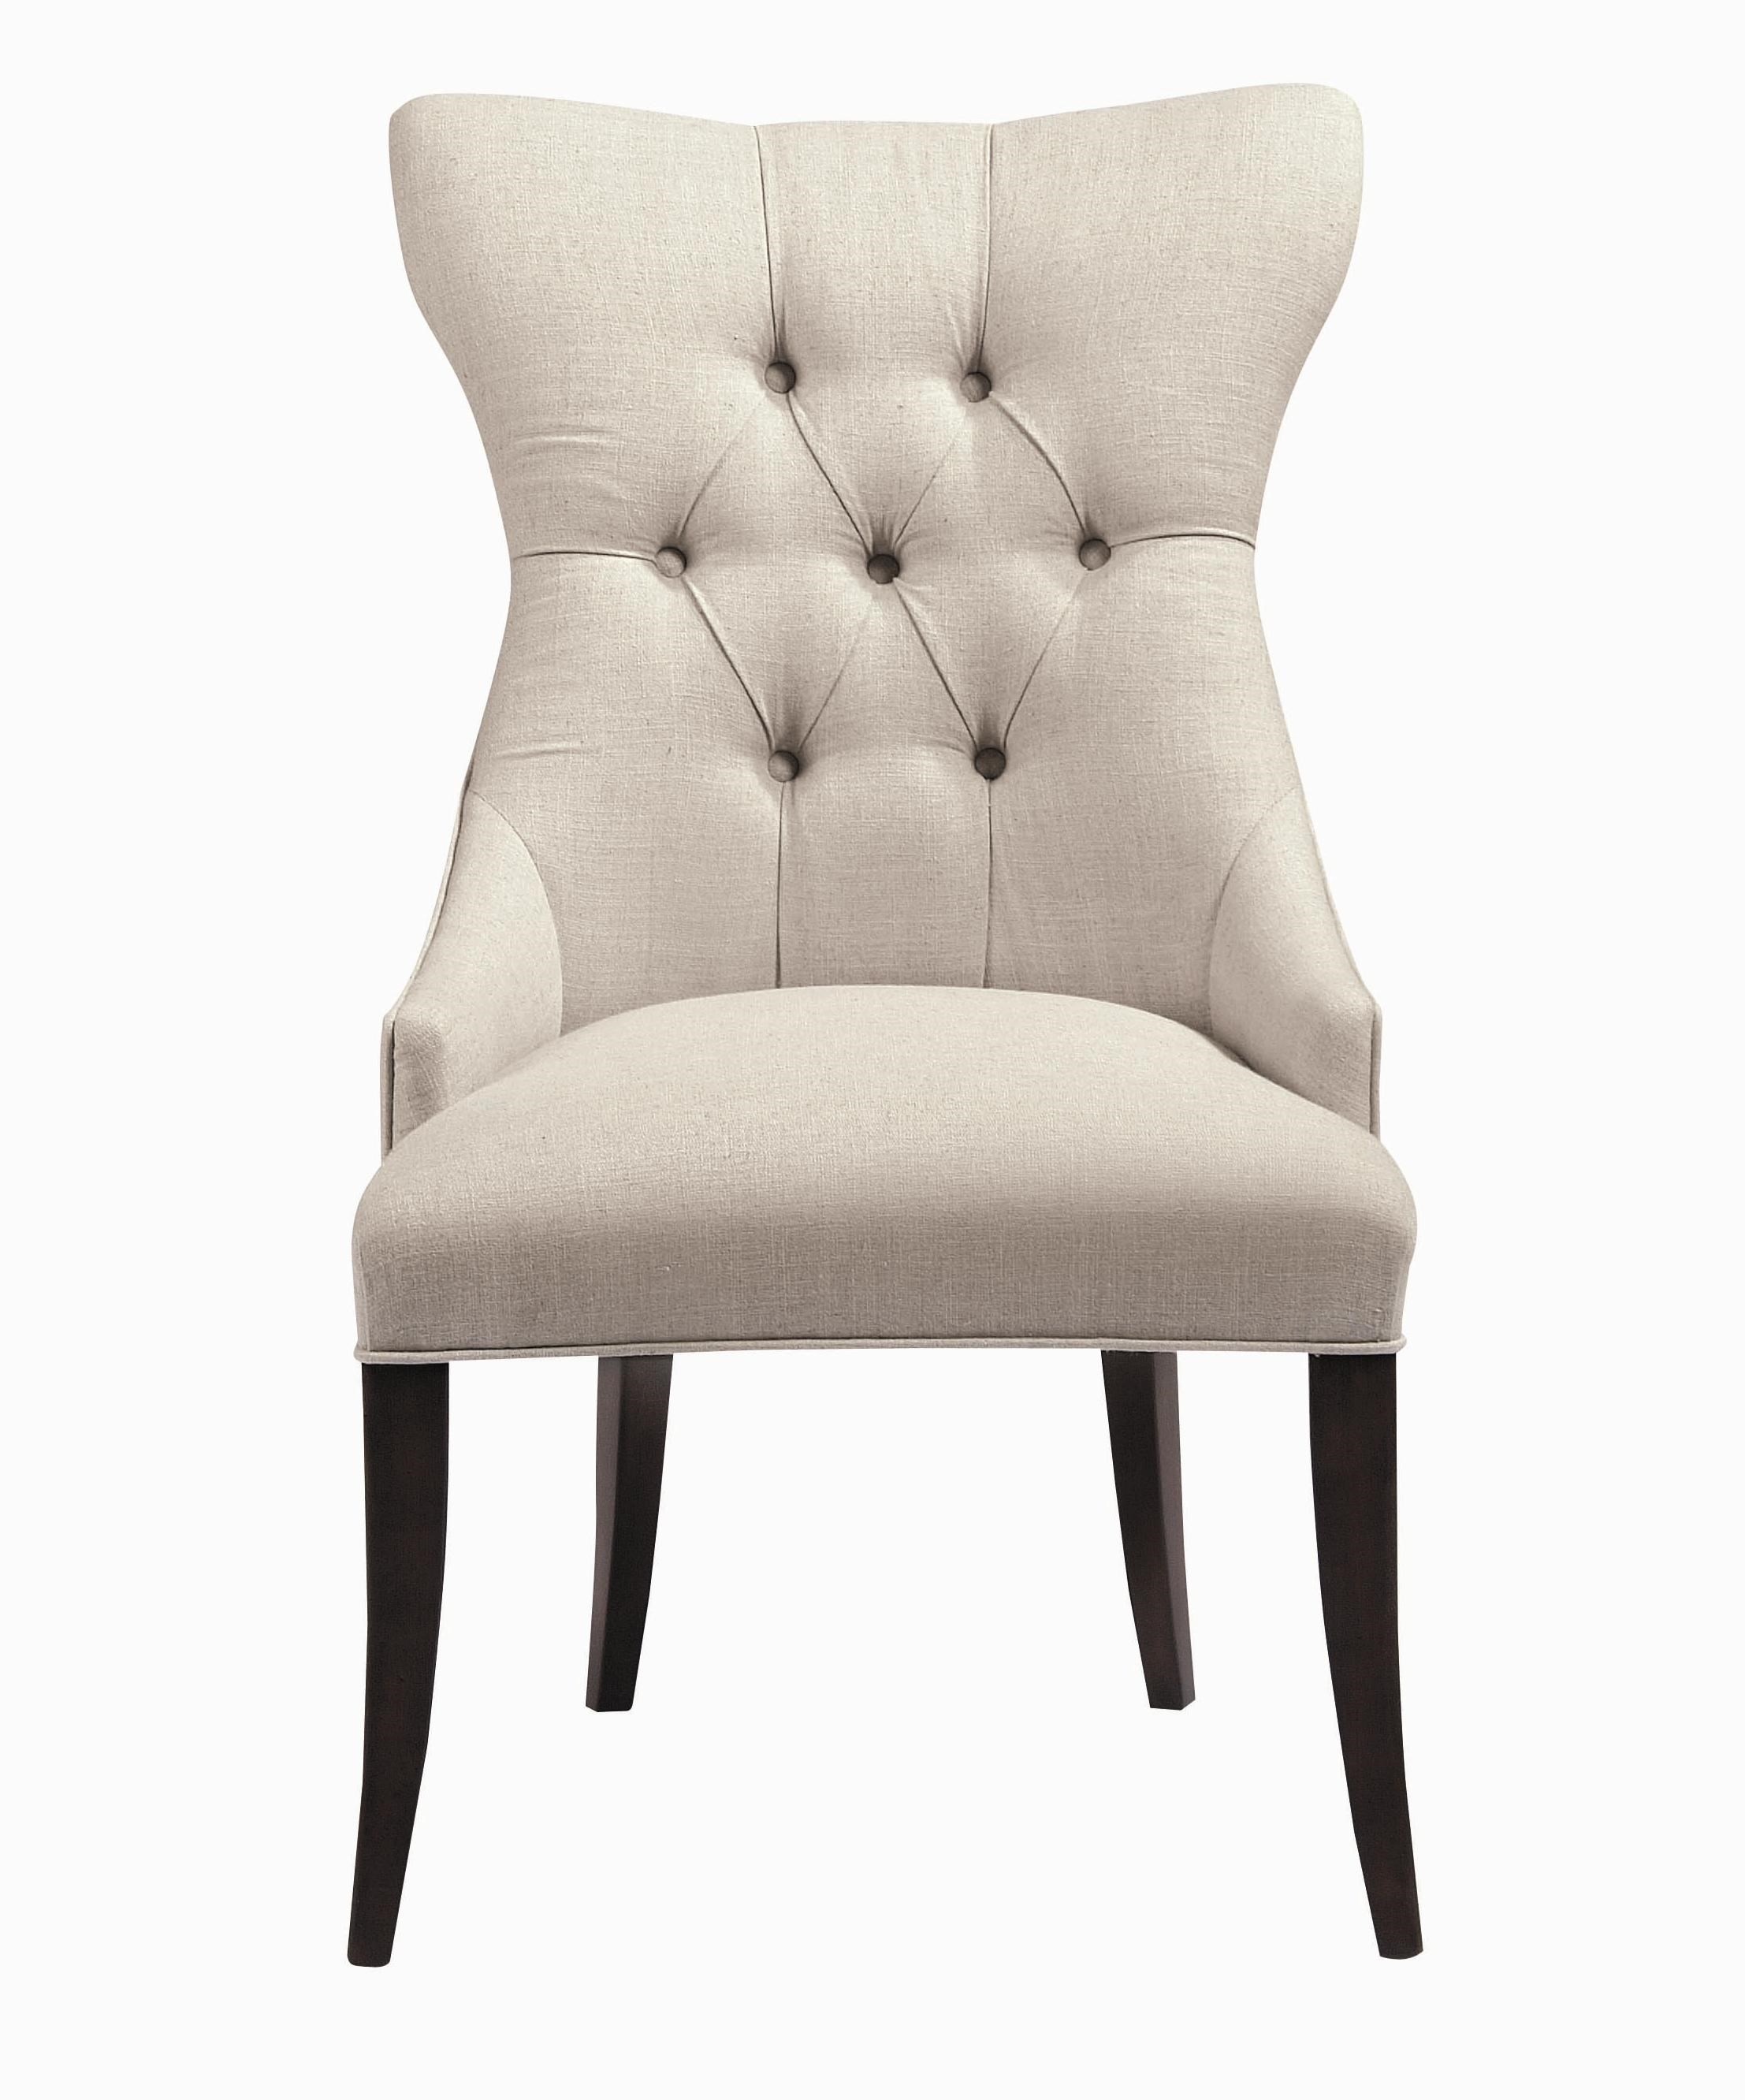 ... Bernhardt Interiors   ChairsDeco Tufted Back Chair ...